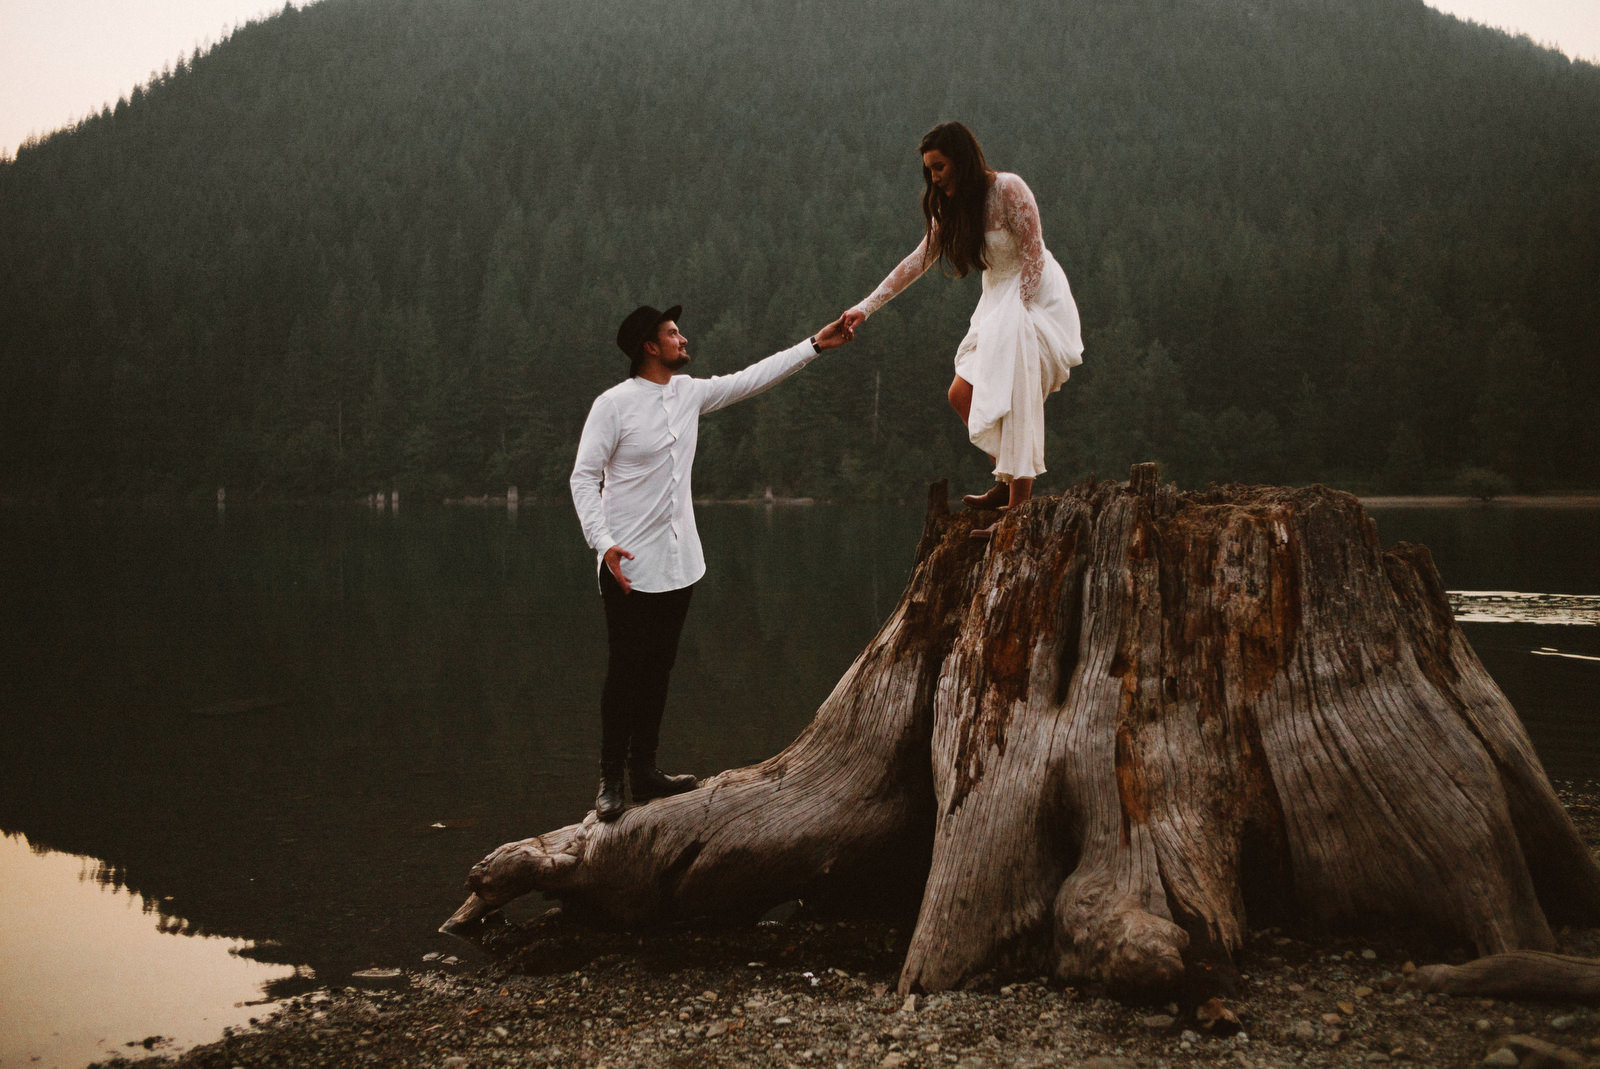 athena-and-camron-seattle-elopement-wedding-benj-haisch-rattlesnake-lake-christian-couple-goals92